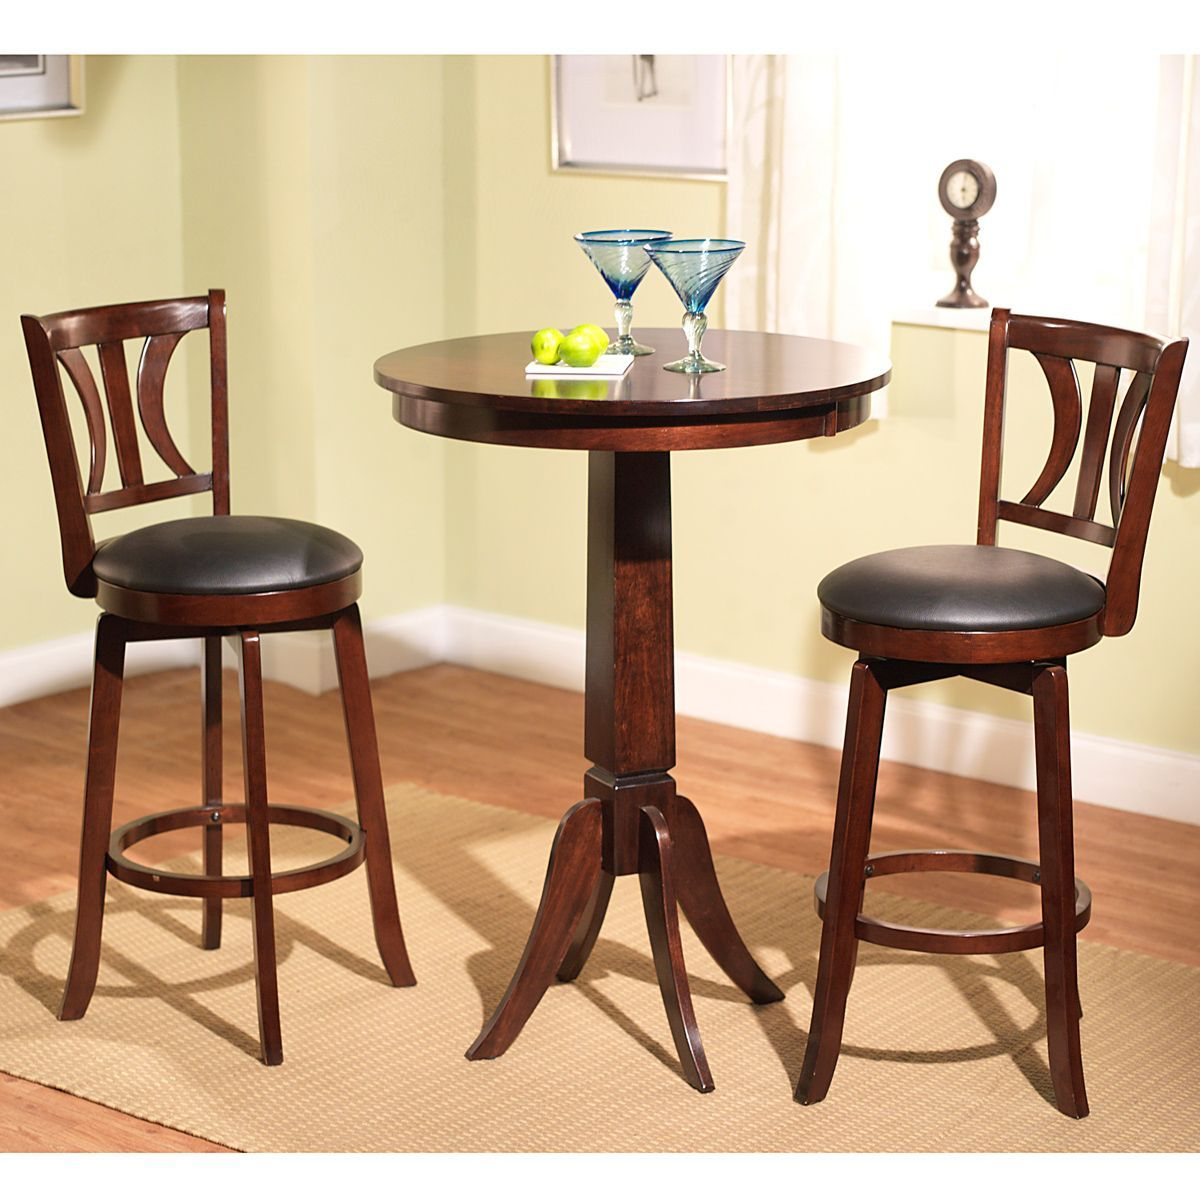 Spice Up Your Breakfast Nook Or Dining Space With This Elegant Pub Endearing Three Piece Dining Room Set Decorating Design